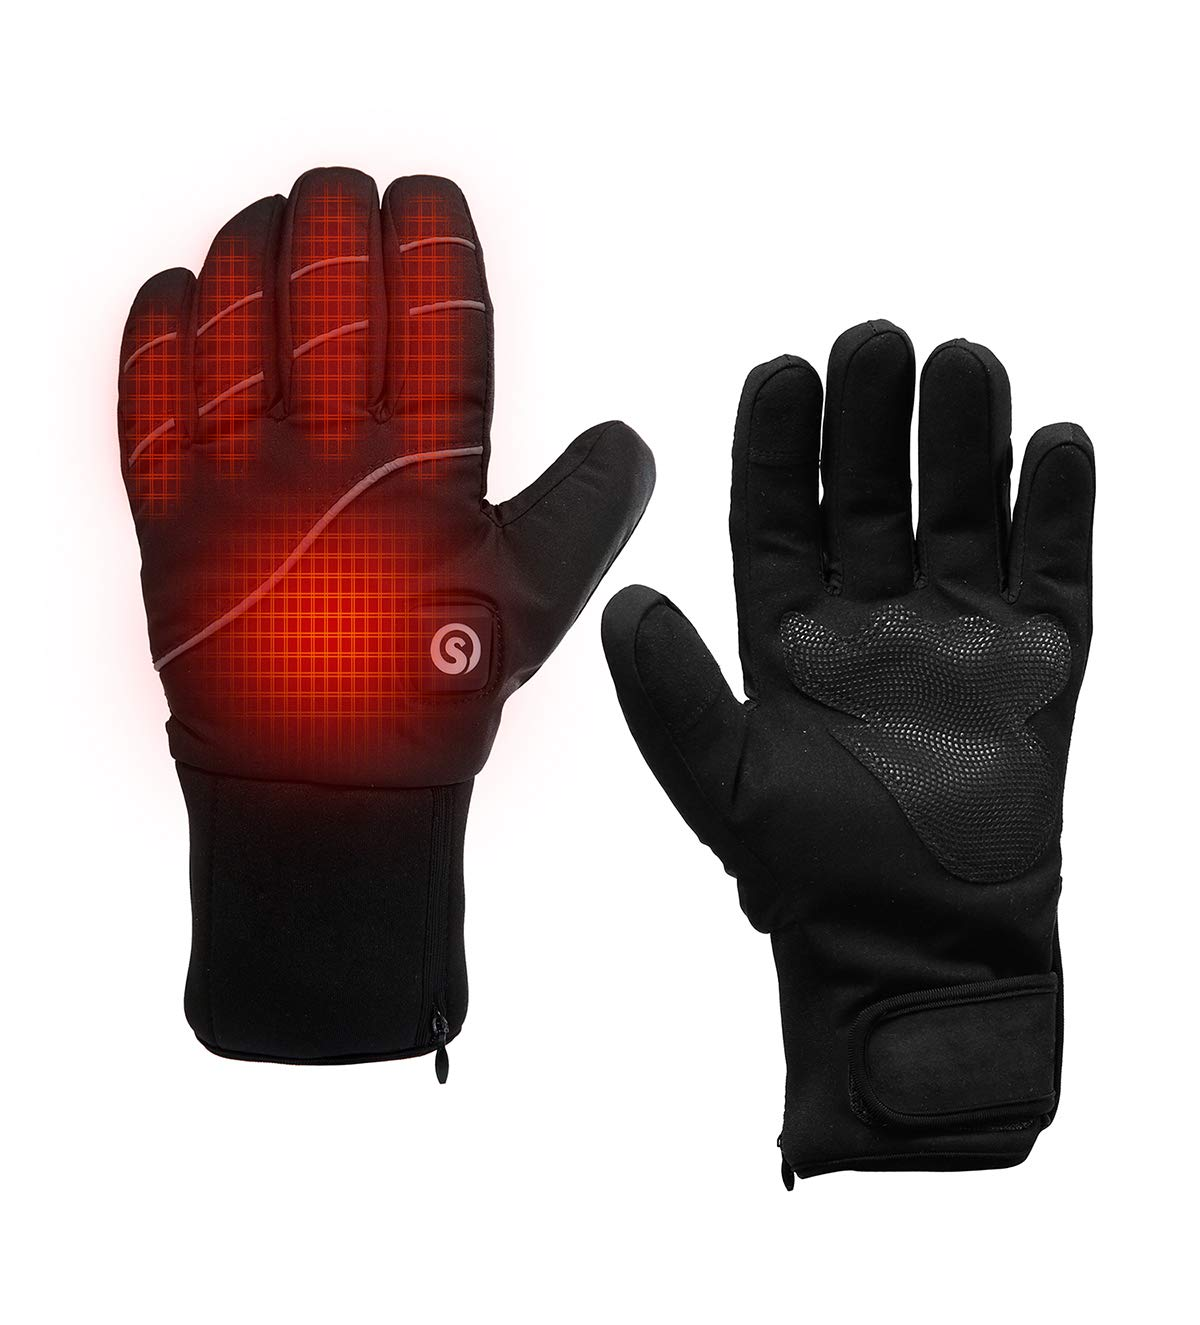 day wolf Heated Gloves Light Weight Design Electric Hand Warmer 7.4V 2200MAH Rechargeable for Men Women Water Resistant Thermal Heat for Winter Indoor Outdoor Sports Skiing Camping Hiking Hunting by day wolf